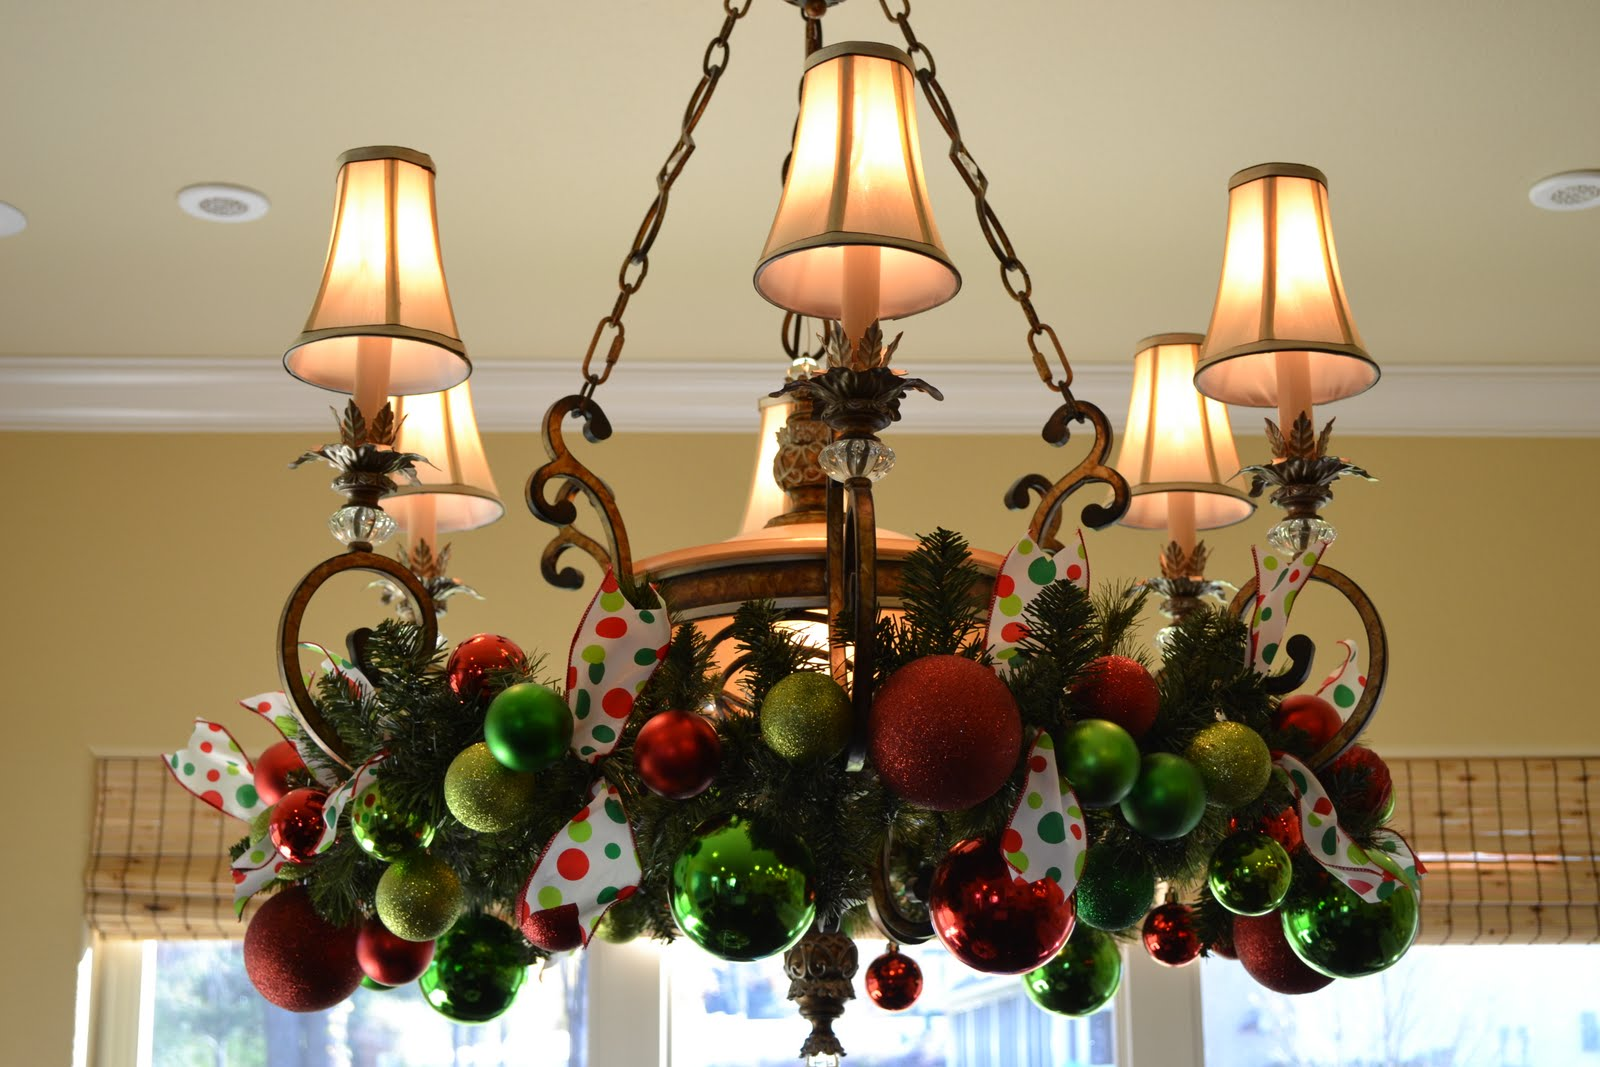 Kristen's Creations: A Whimsical Christmas